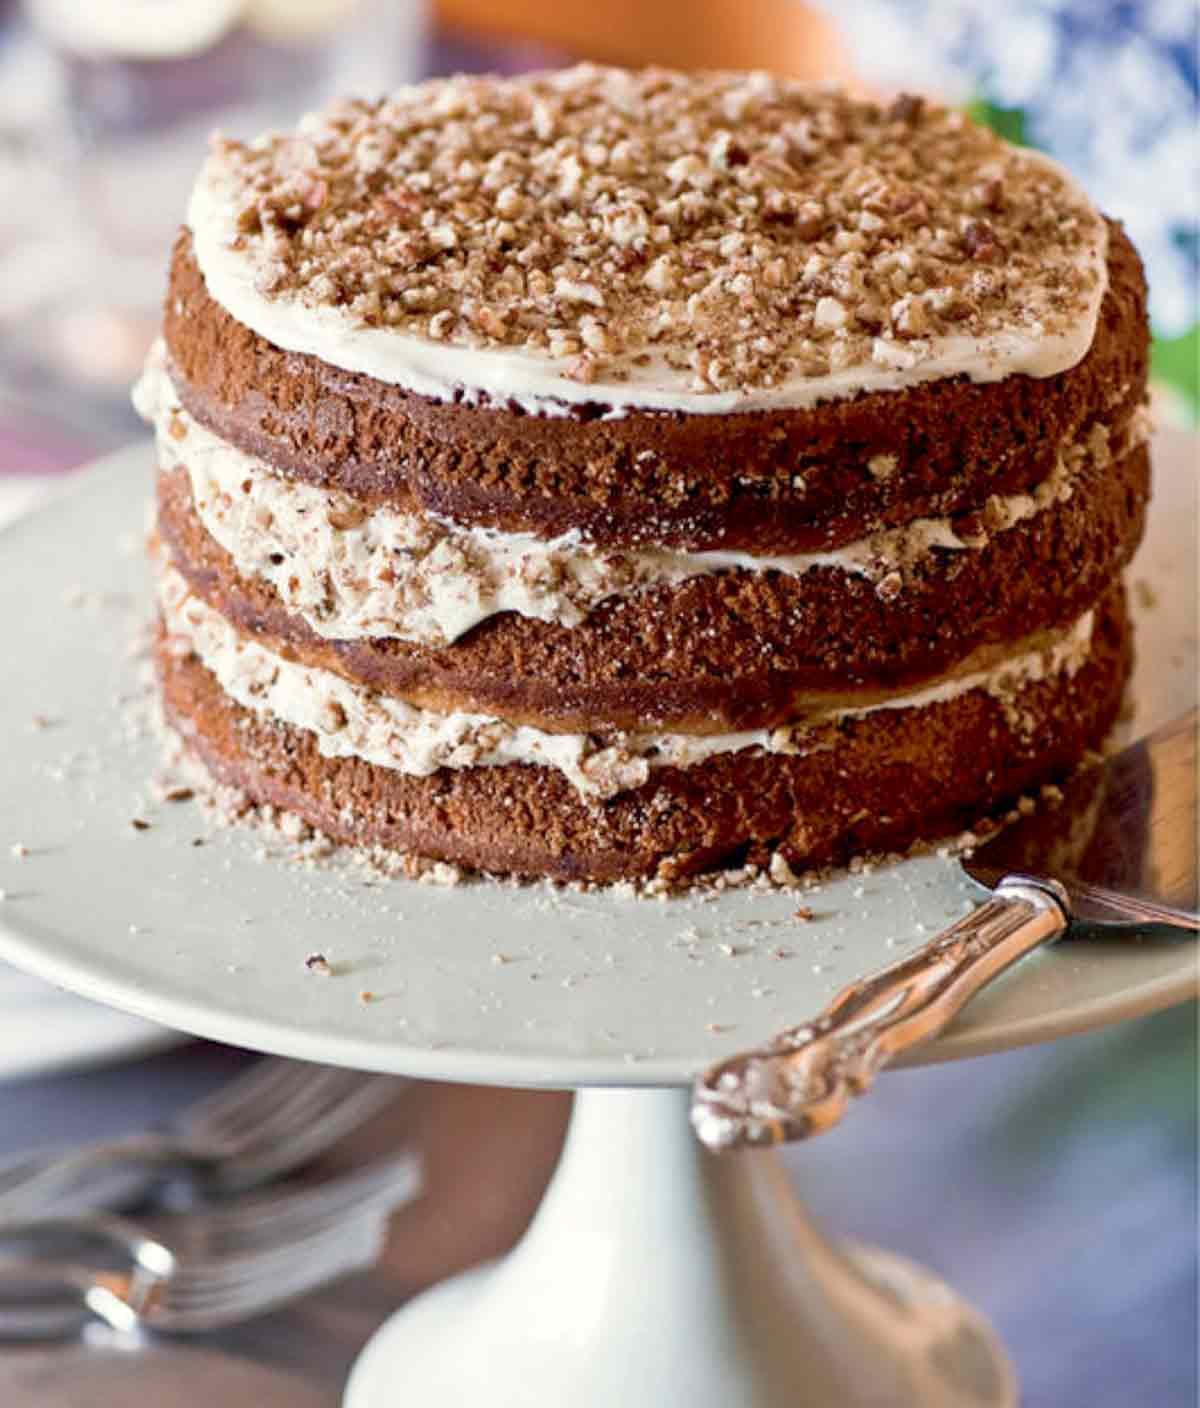 A three-layer hummingbird cake with a cake server beside it.